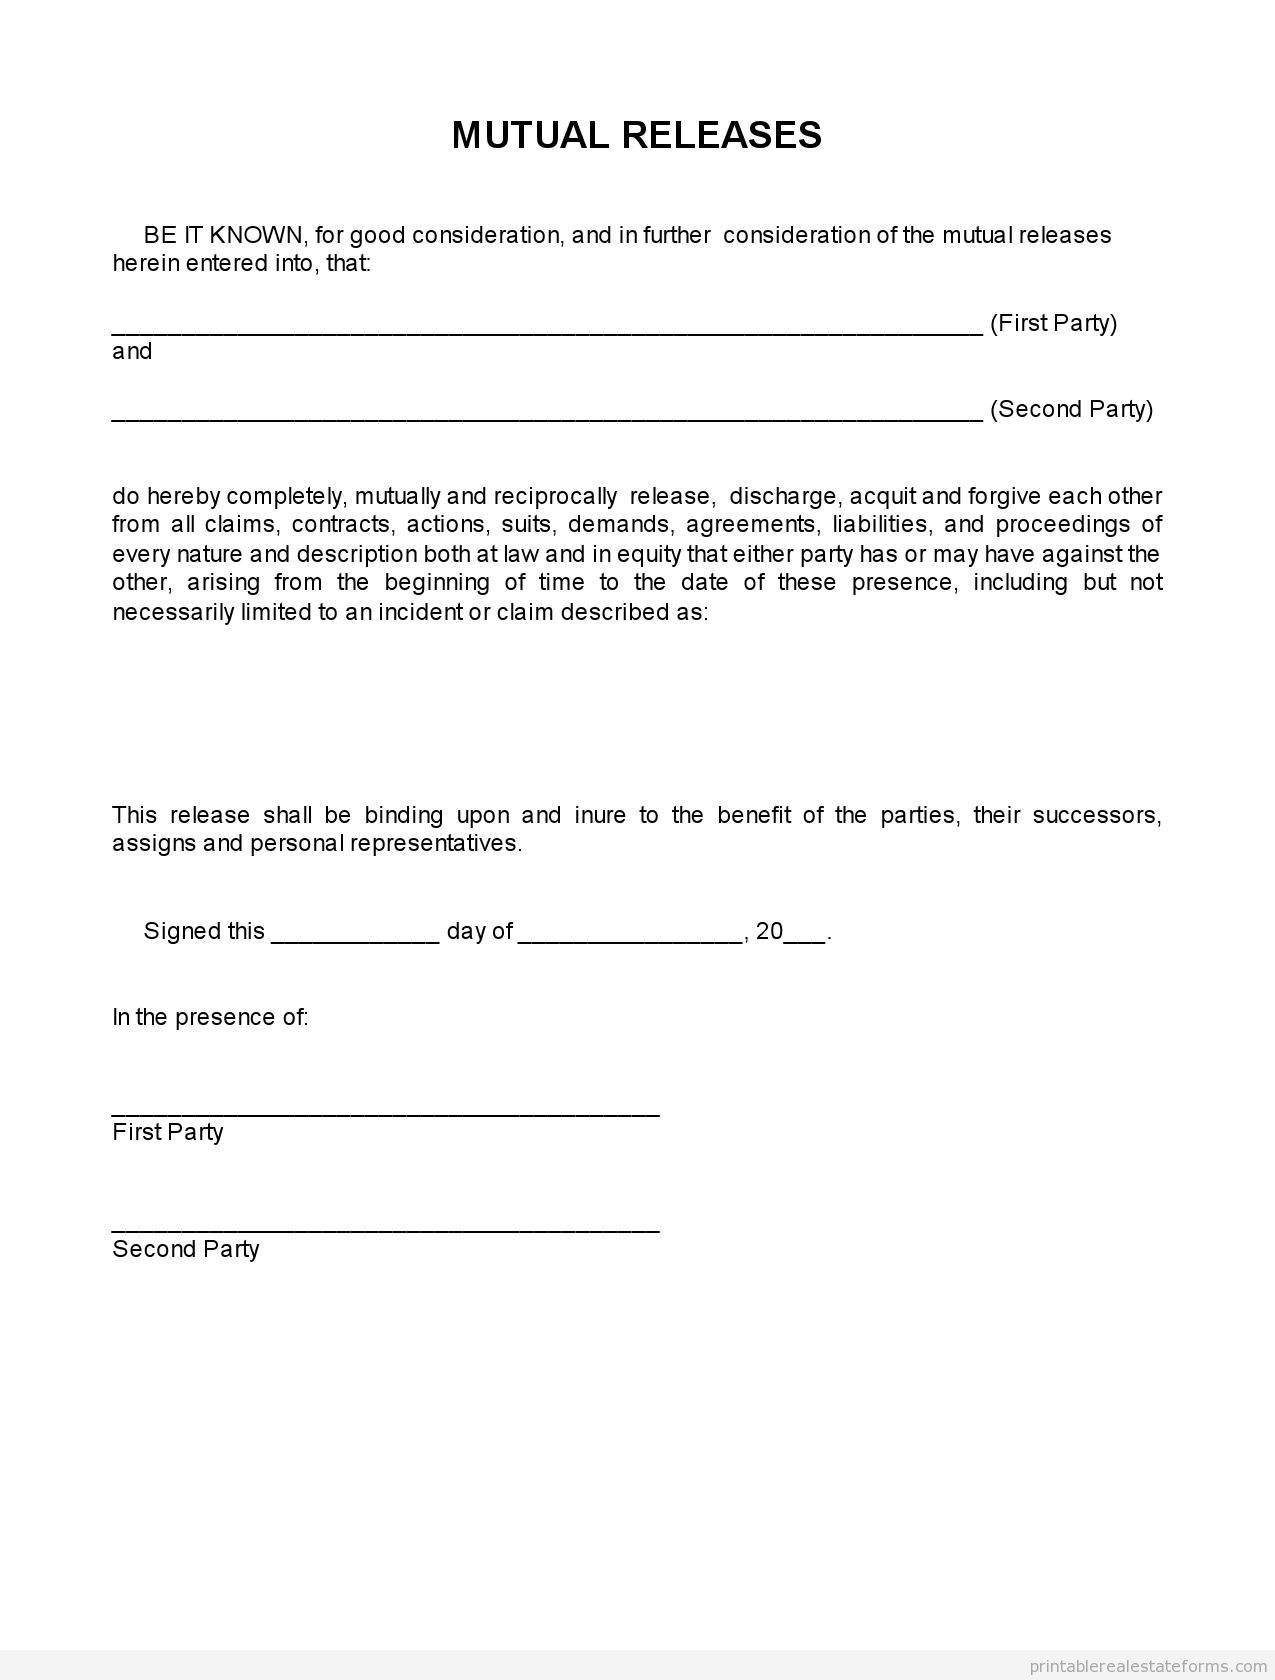 Sample Printable Termination Of Sale Mutual Releases  Form